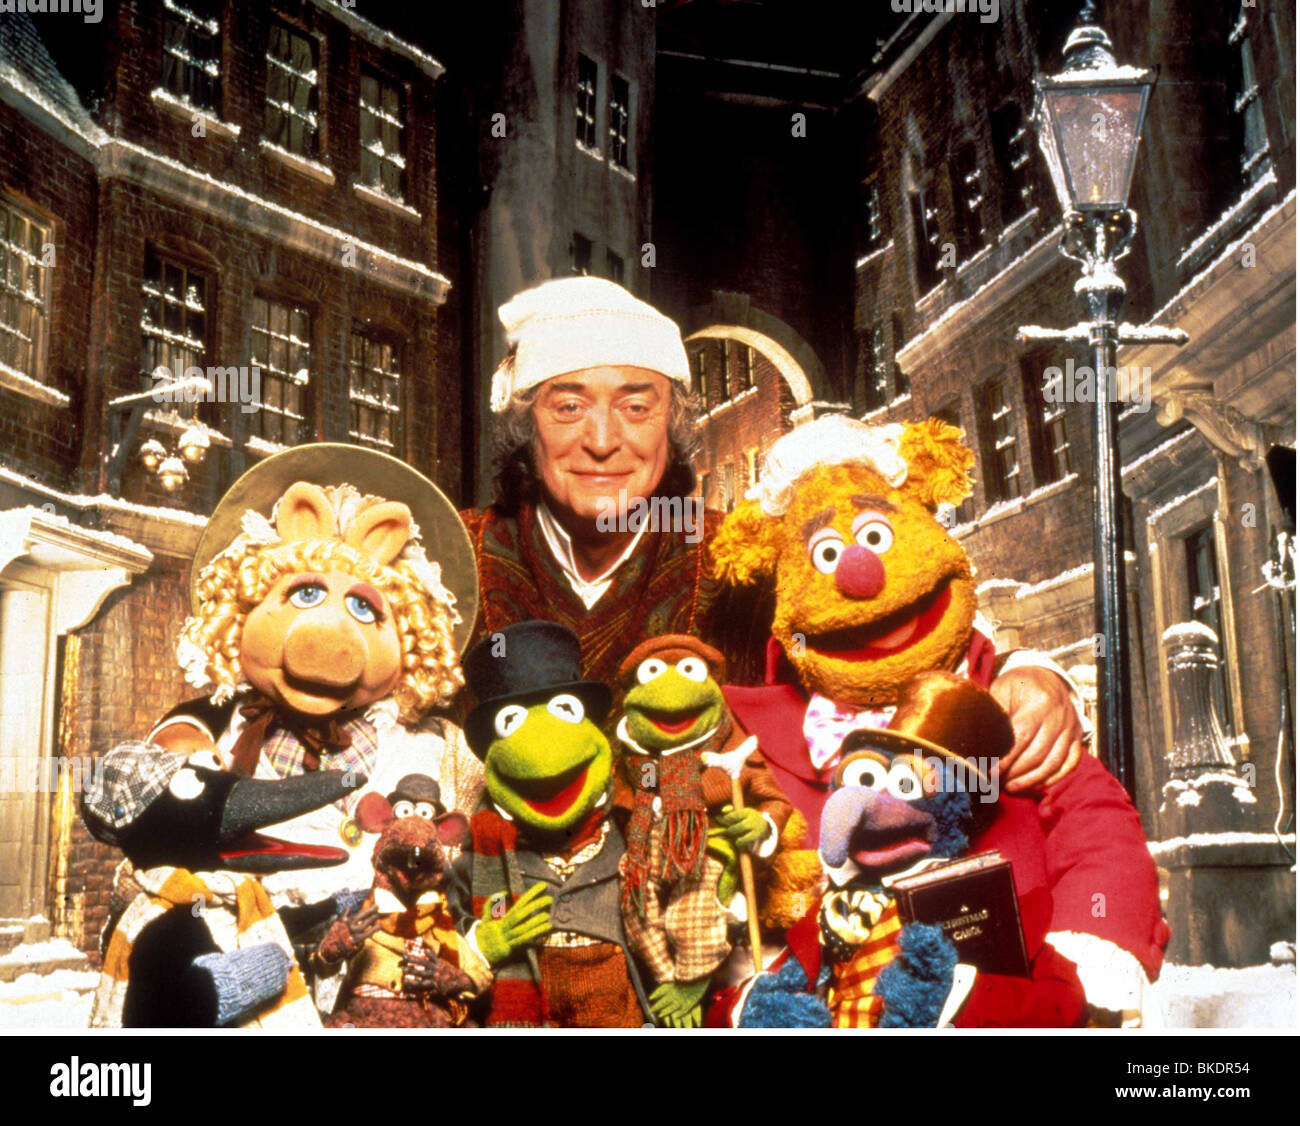 Gonzo Muppet Stock Photos & Gonzo Muppet Stock Images